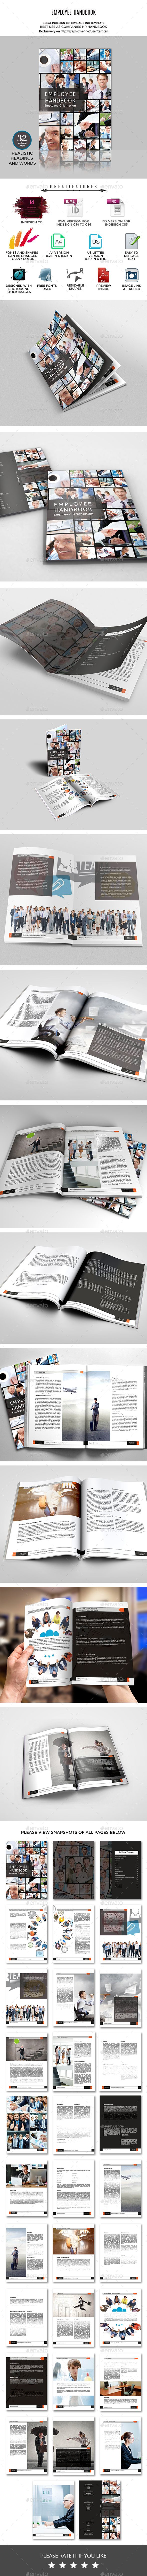 Employee Handbook Manual - InDesign Template • Only available here ➝ https://graphicriver.net/item/employee-handbook-manual/16930273?ref=pxcr